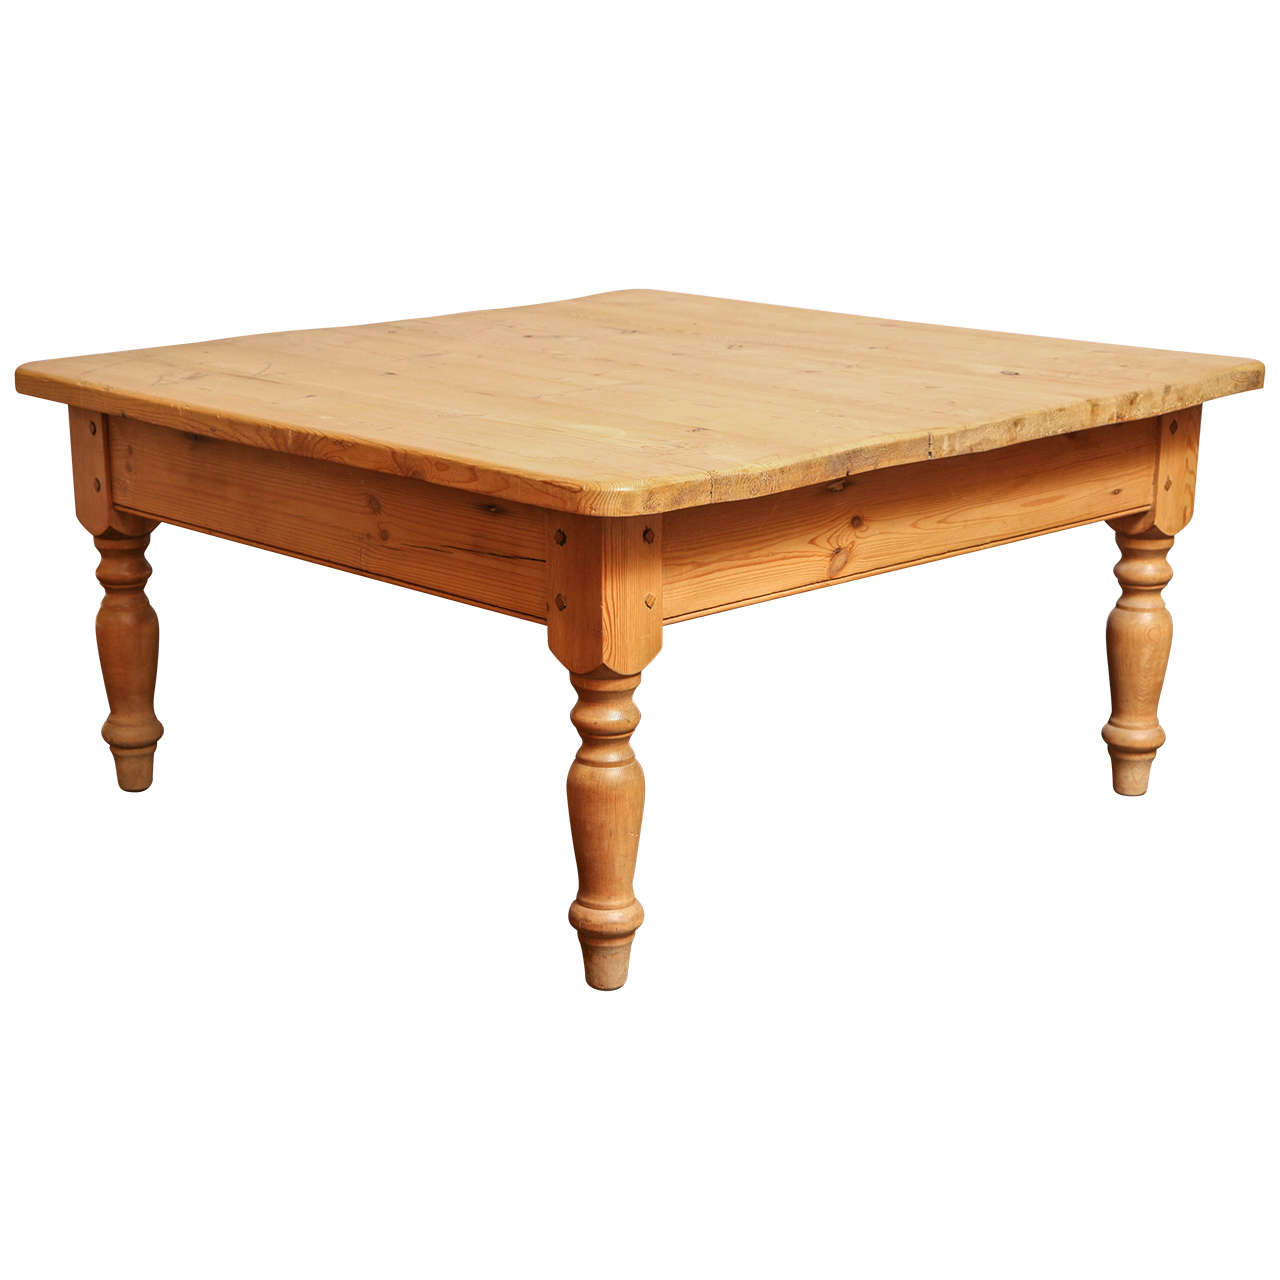 Low Tables For Sale Low Pine Coffee Table With Turned Legs At 1stdibs